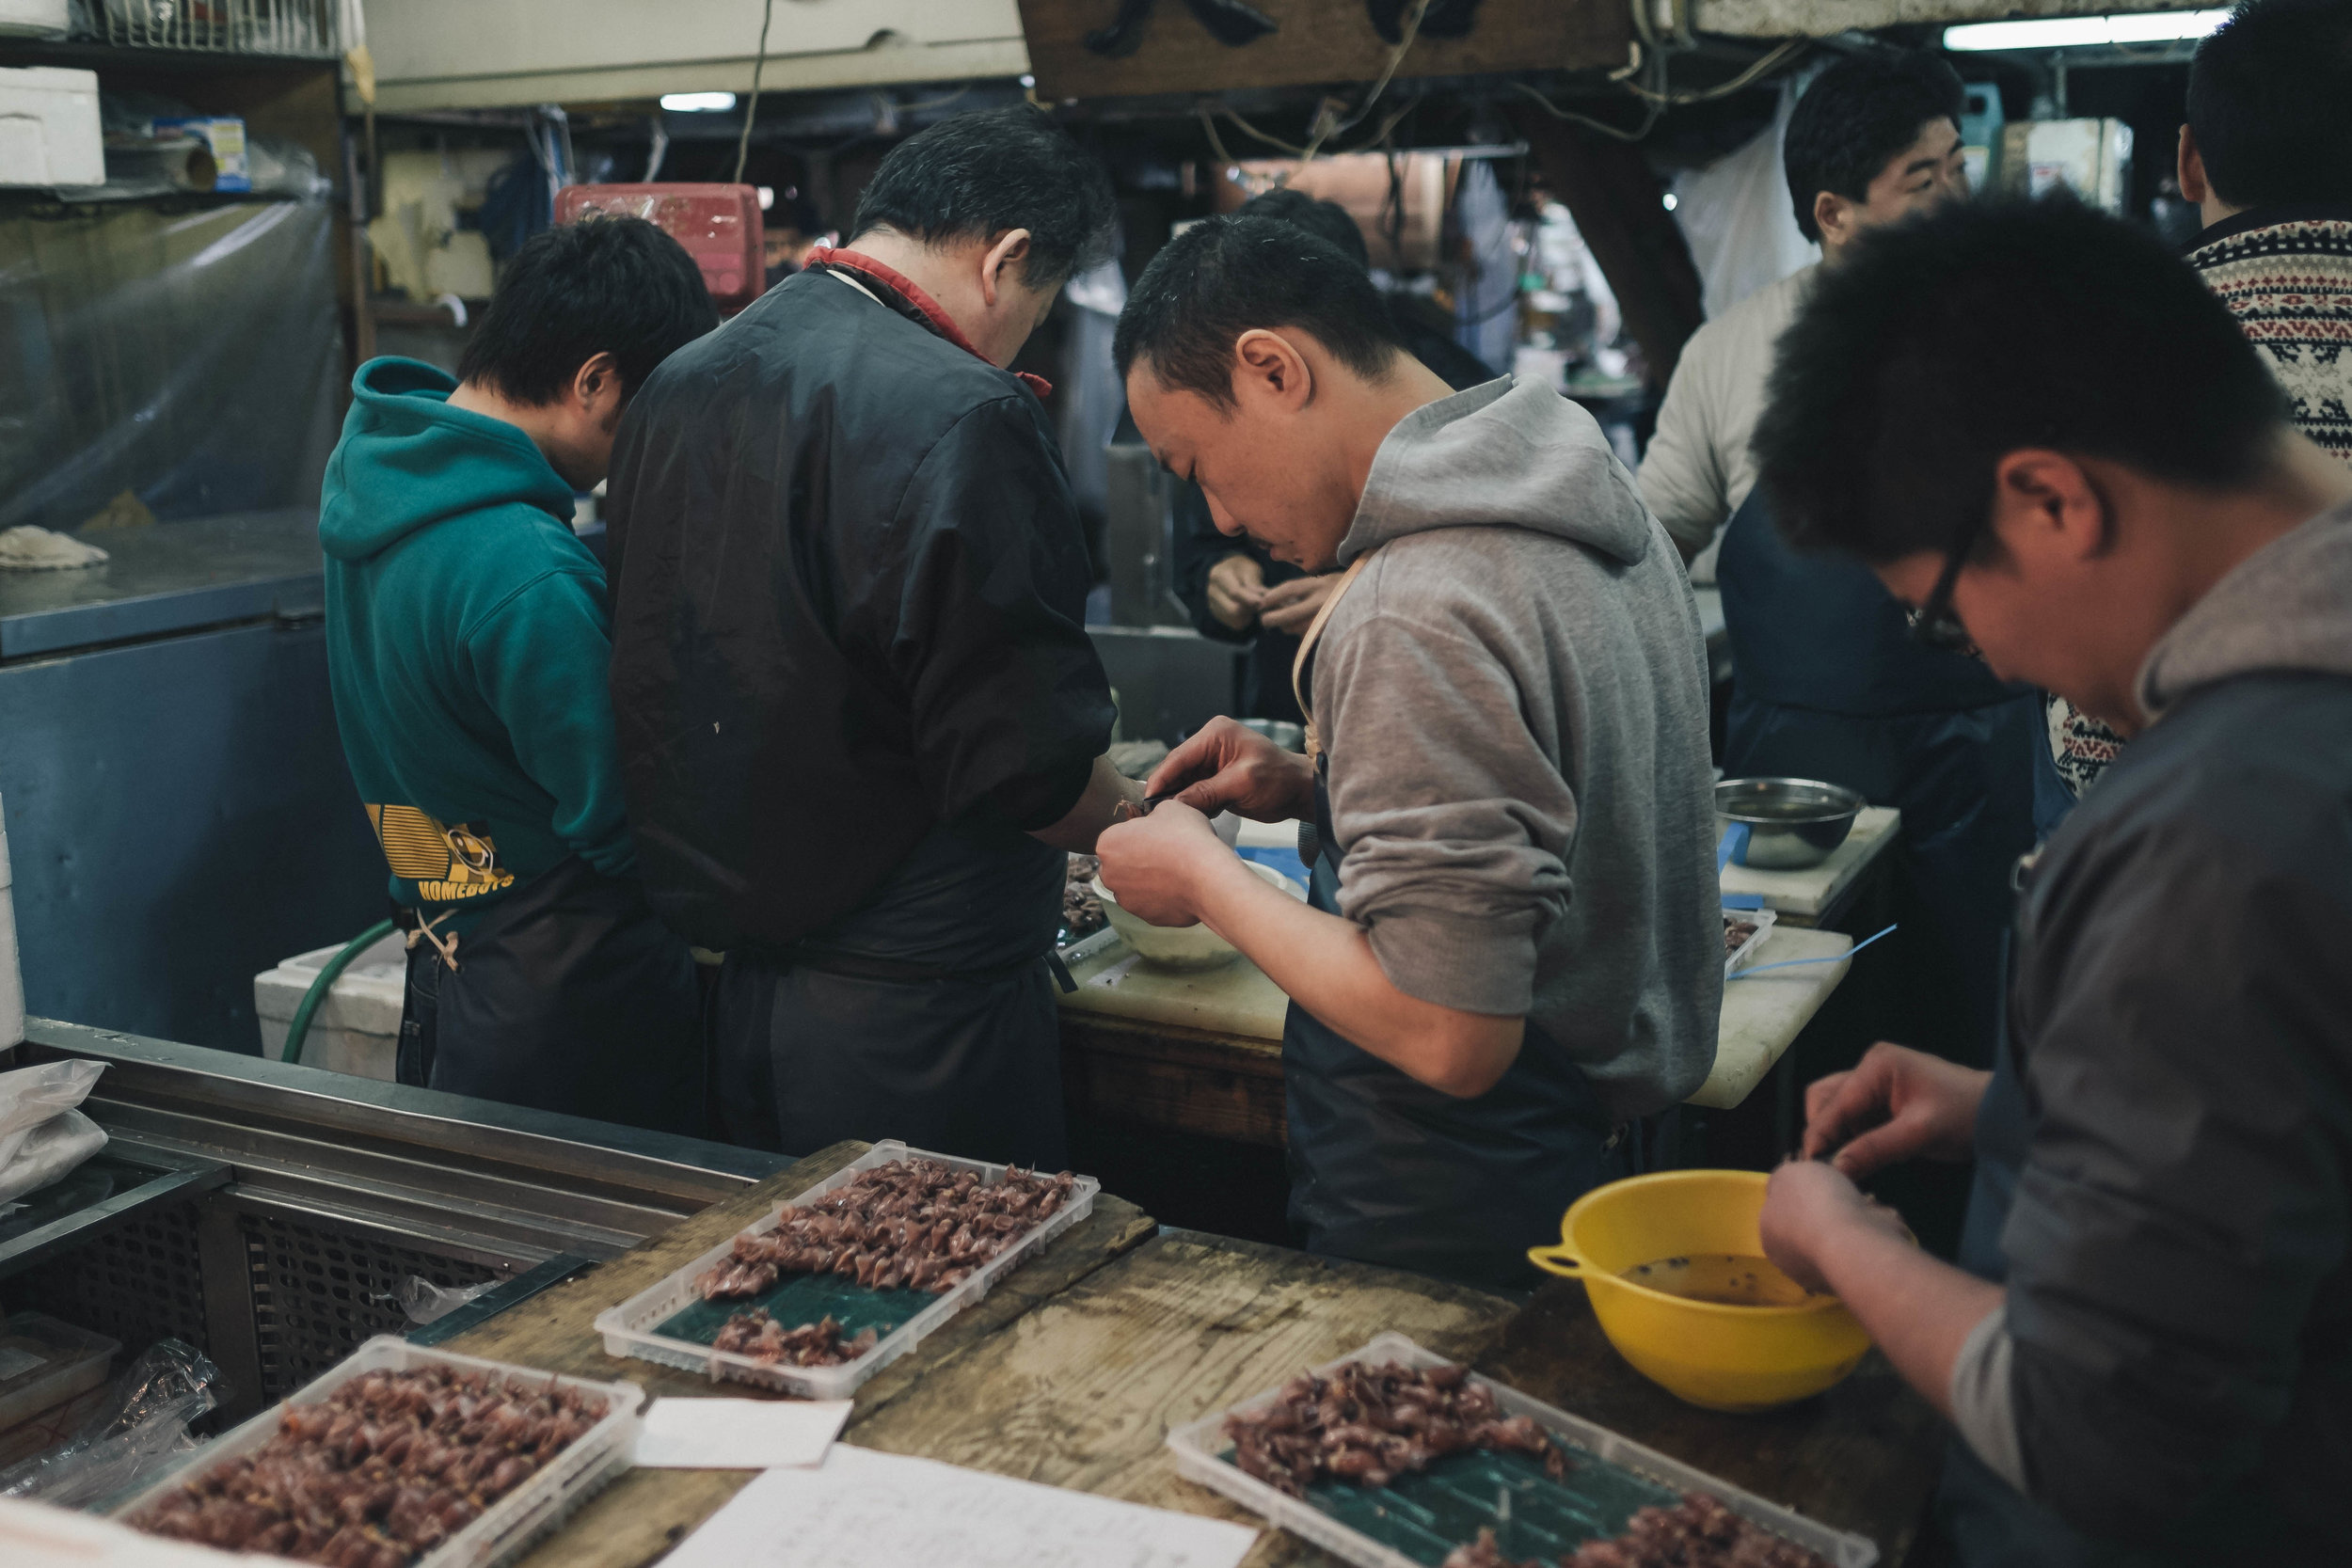 Cleaning up some sea creature at Tsukiji Fish Market, Tokyo.